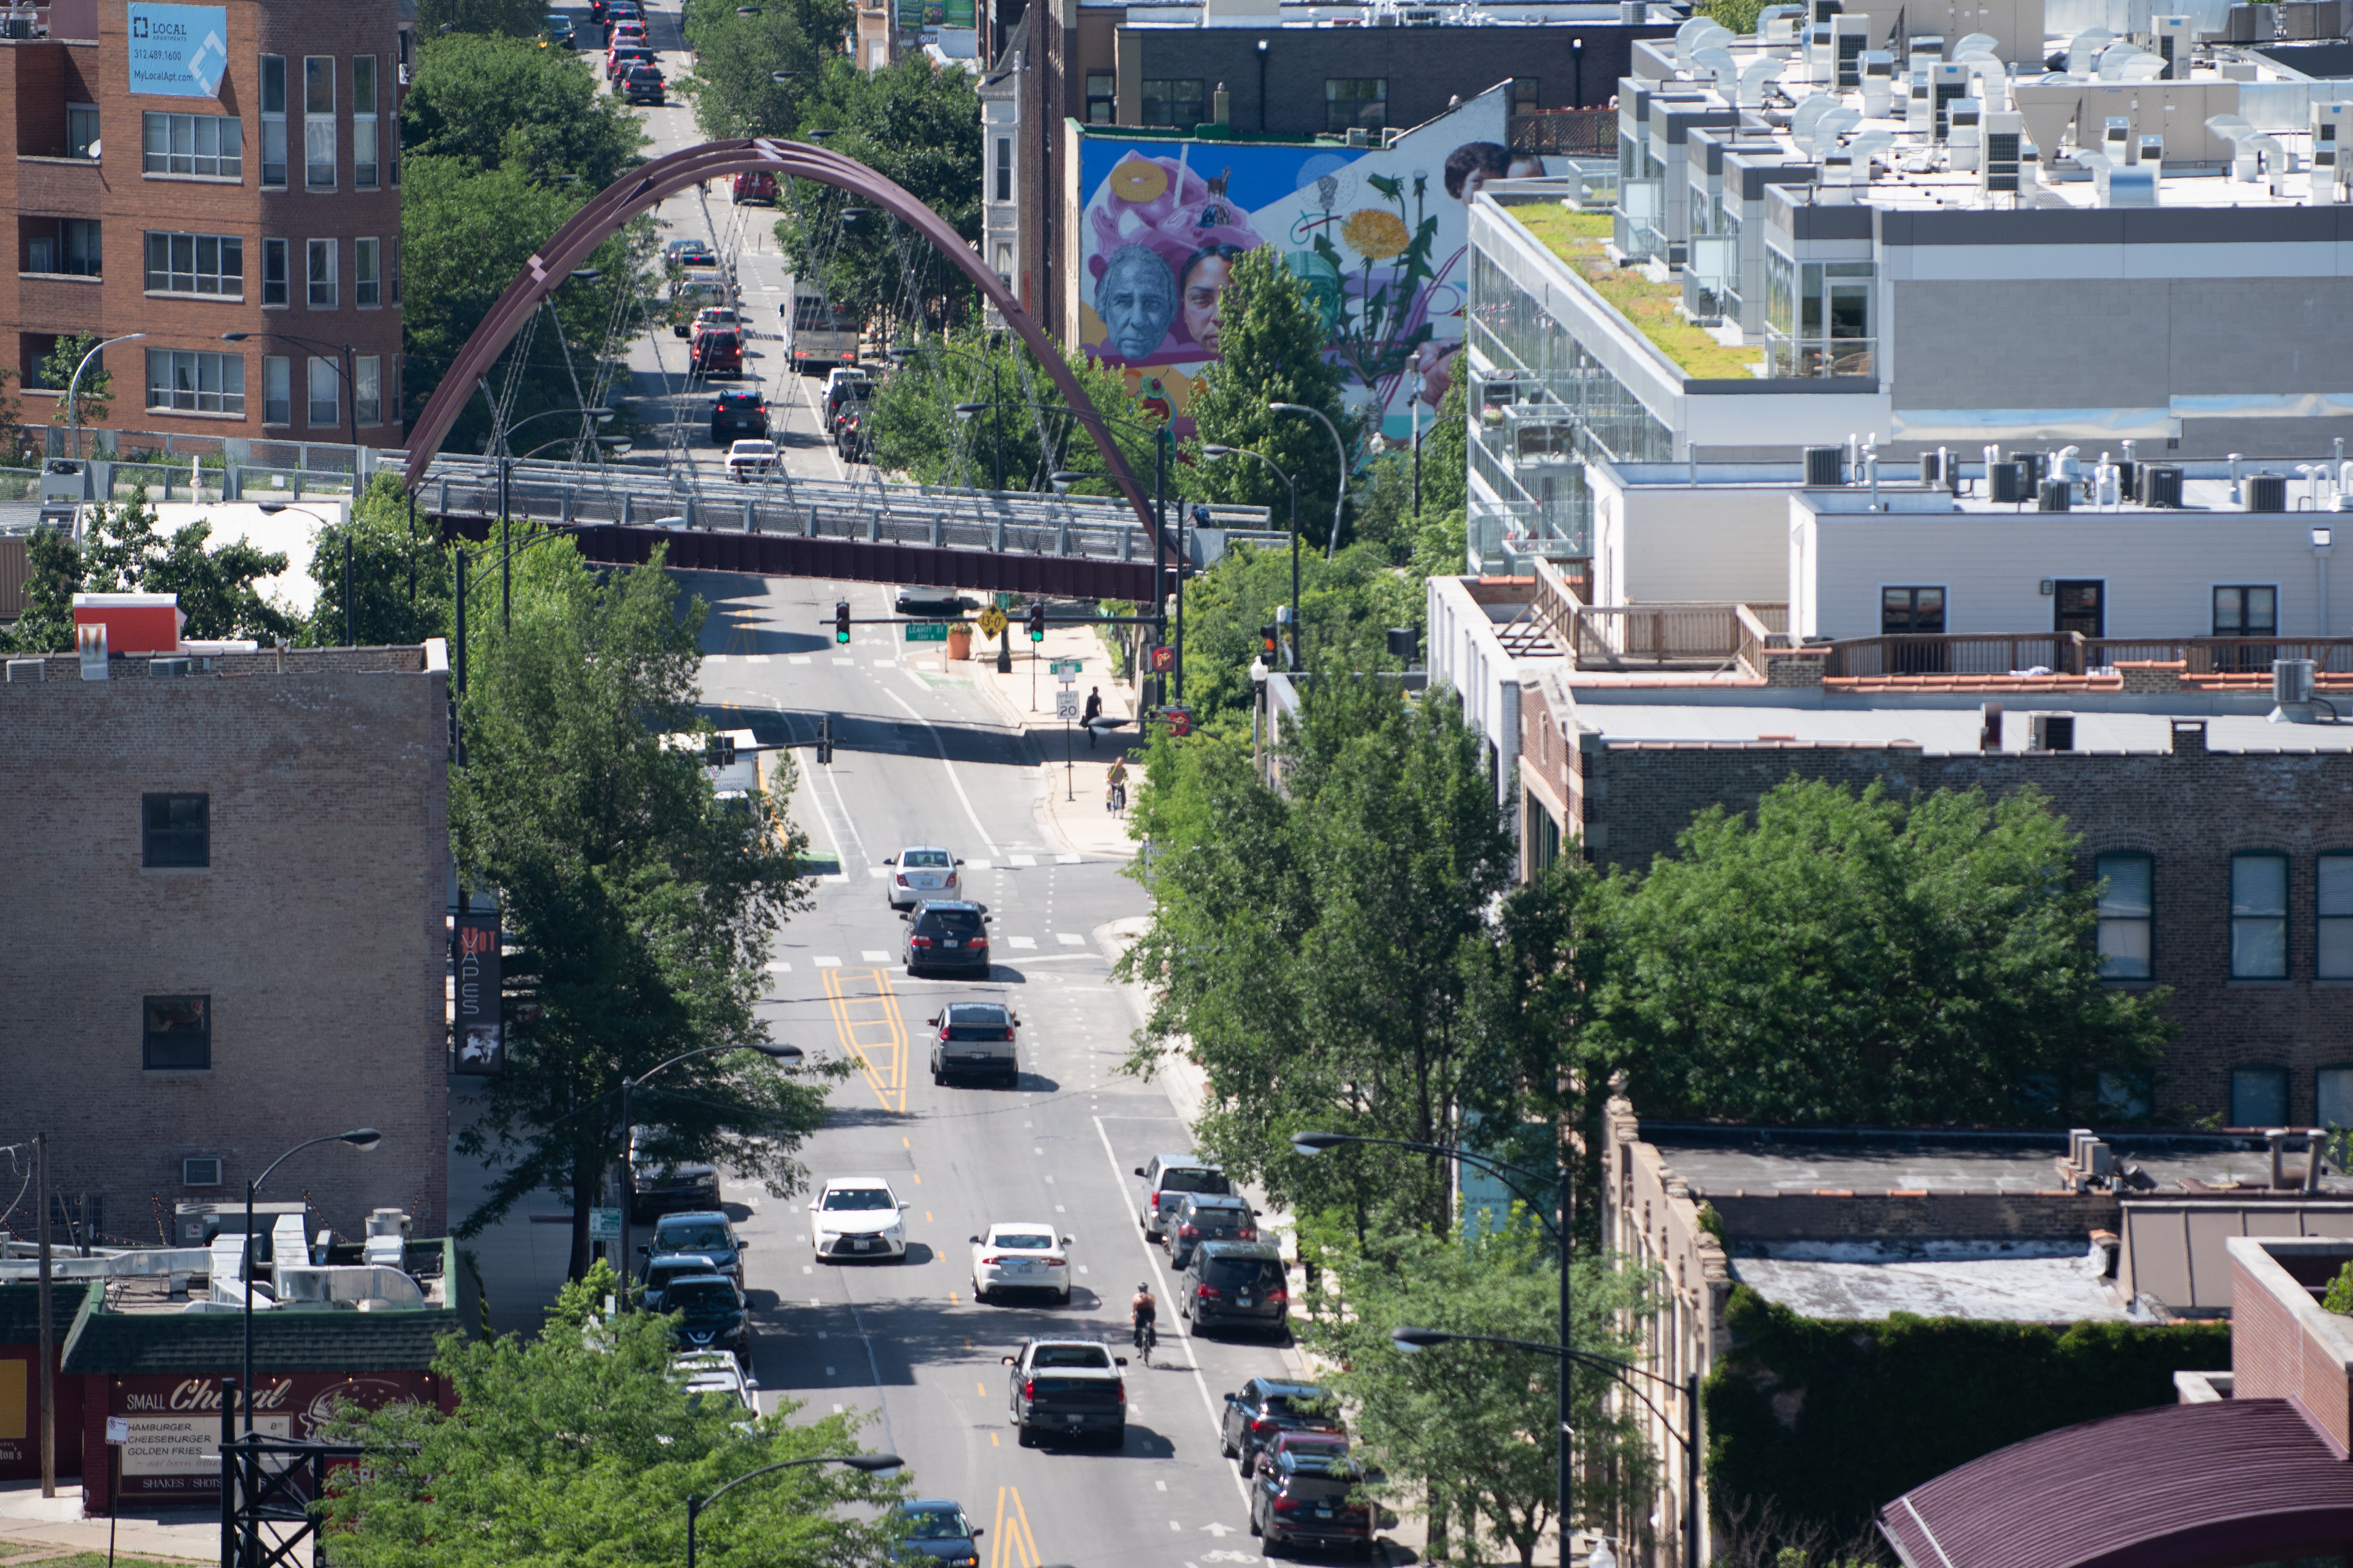 A view of the 606 Trail, seen from the rooftop of the Robey Hotel in Wicker Park.